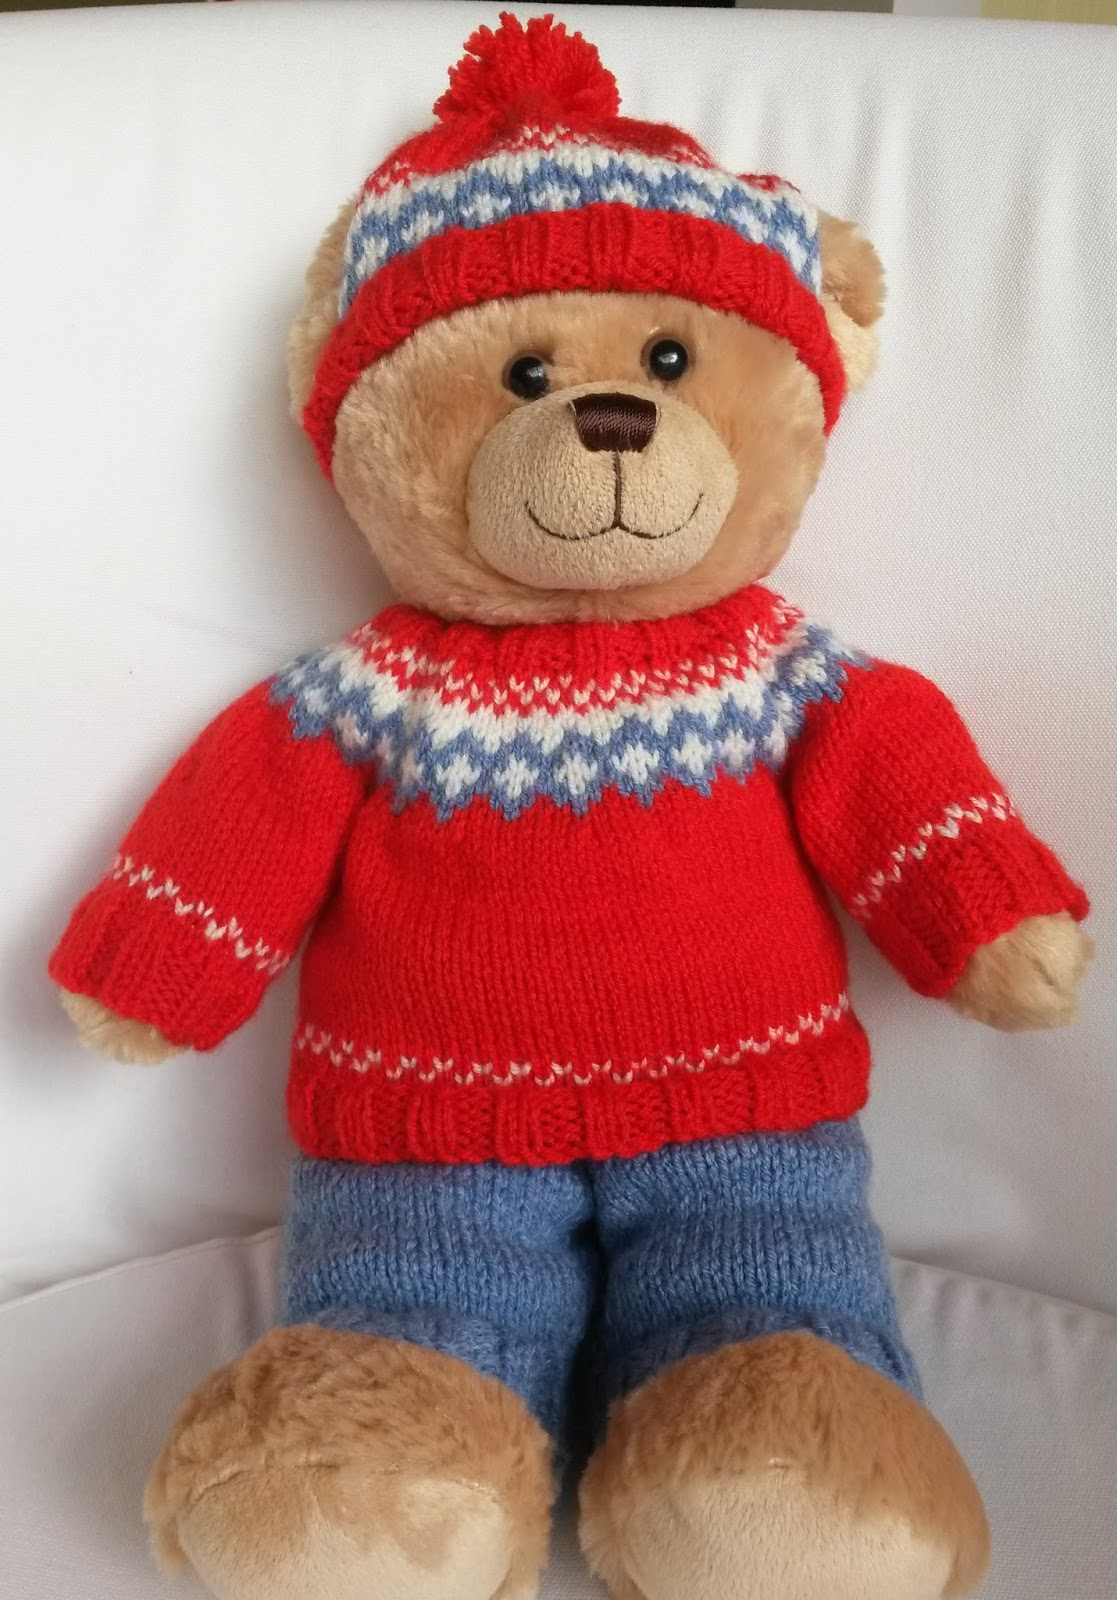 70 Crochet Teddy Bear Patterns - The Funky Stitch